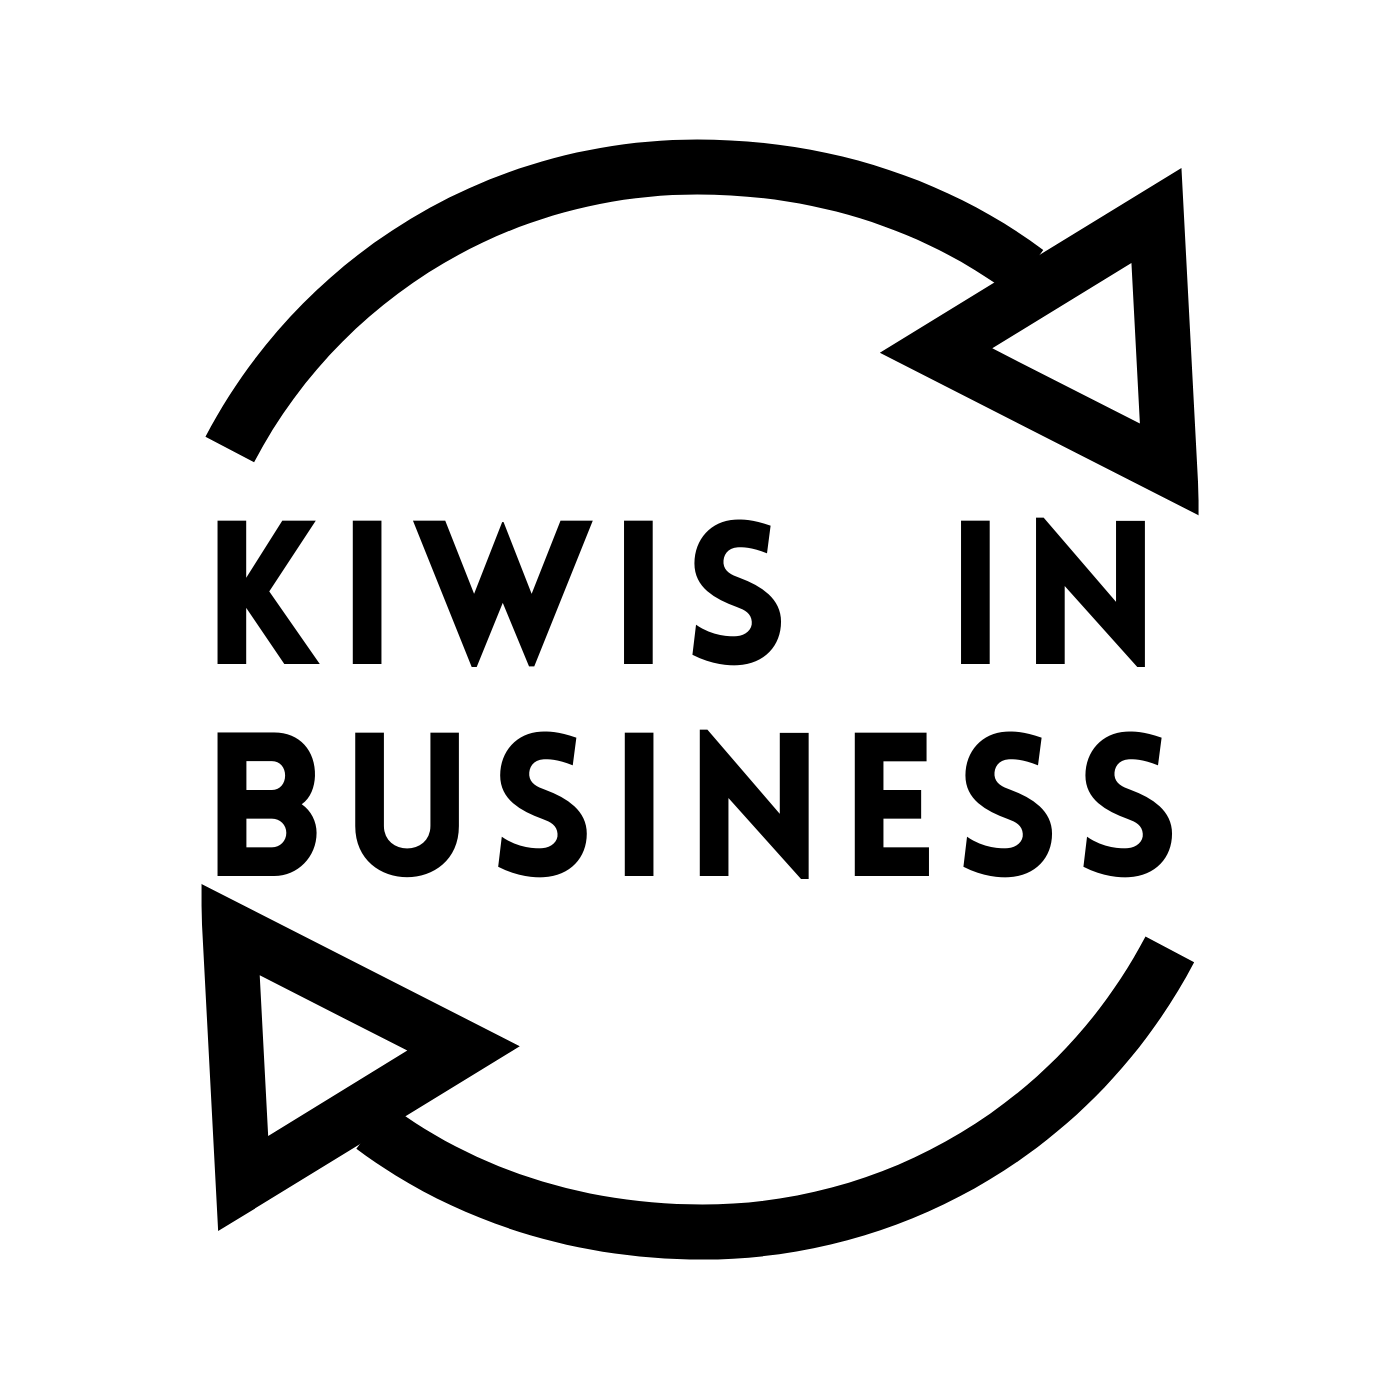 Kiwis in Business